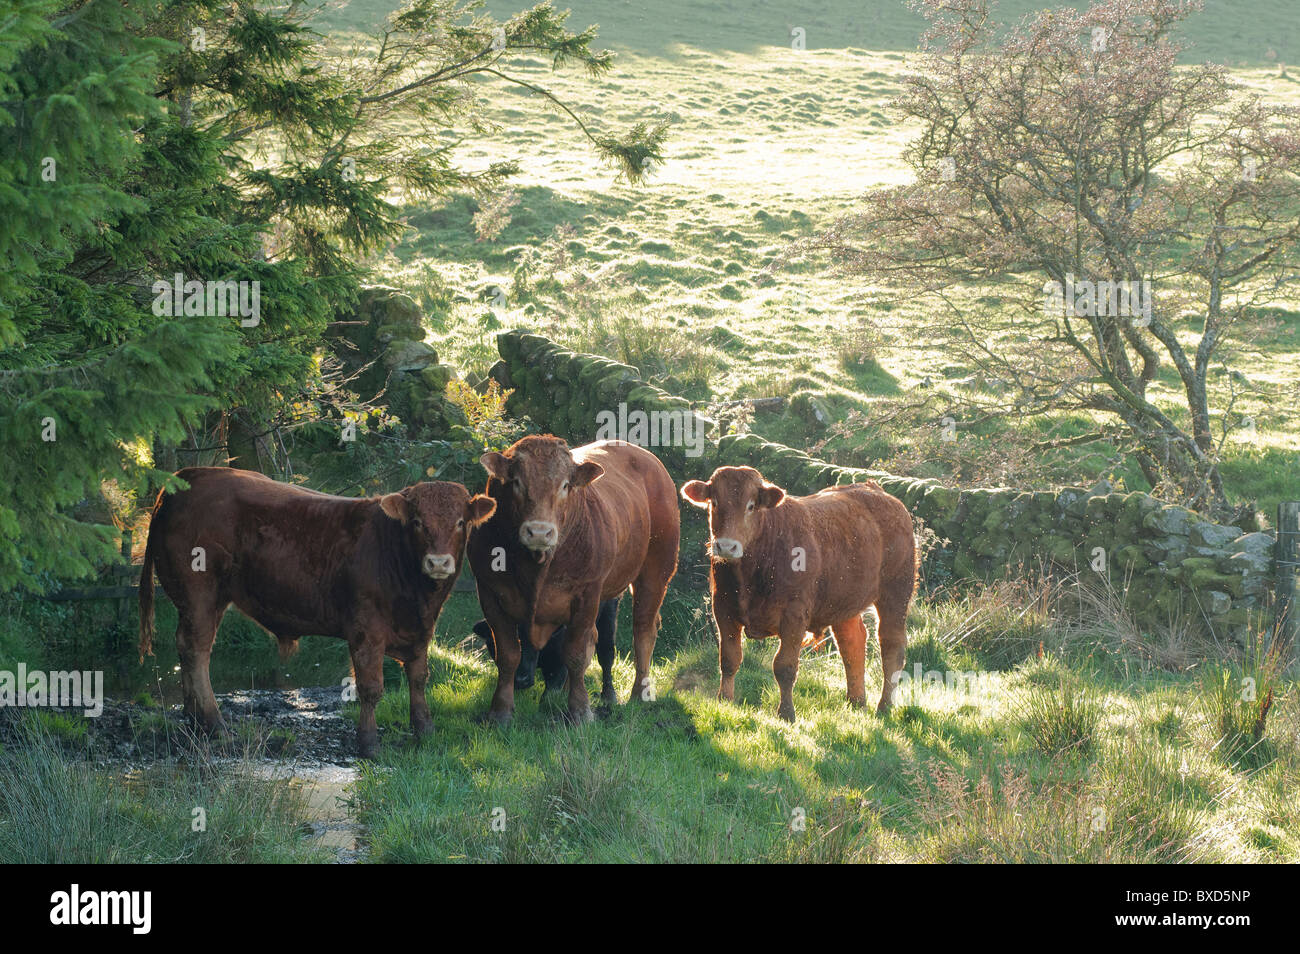 Limousine bull and 2 bullocks in corner of a galloway field - Stock Image